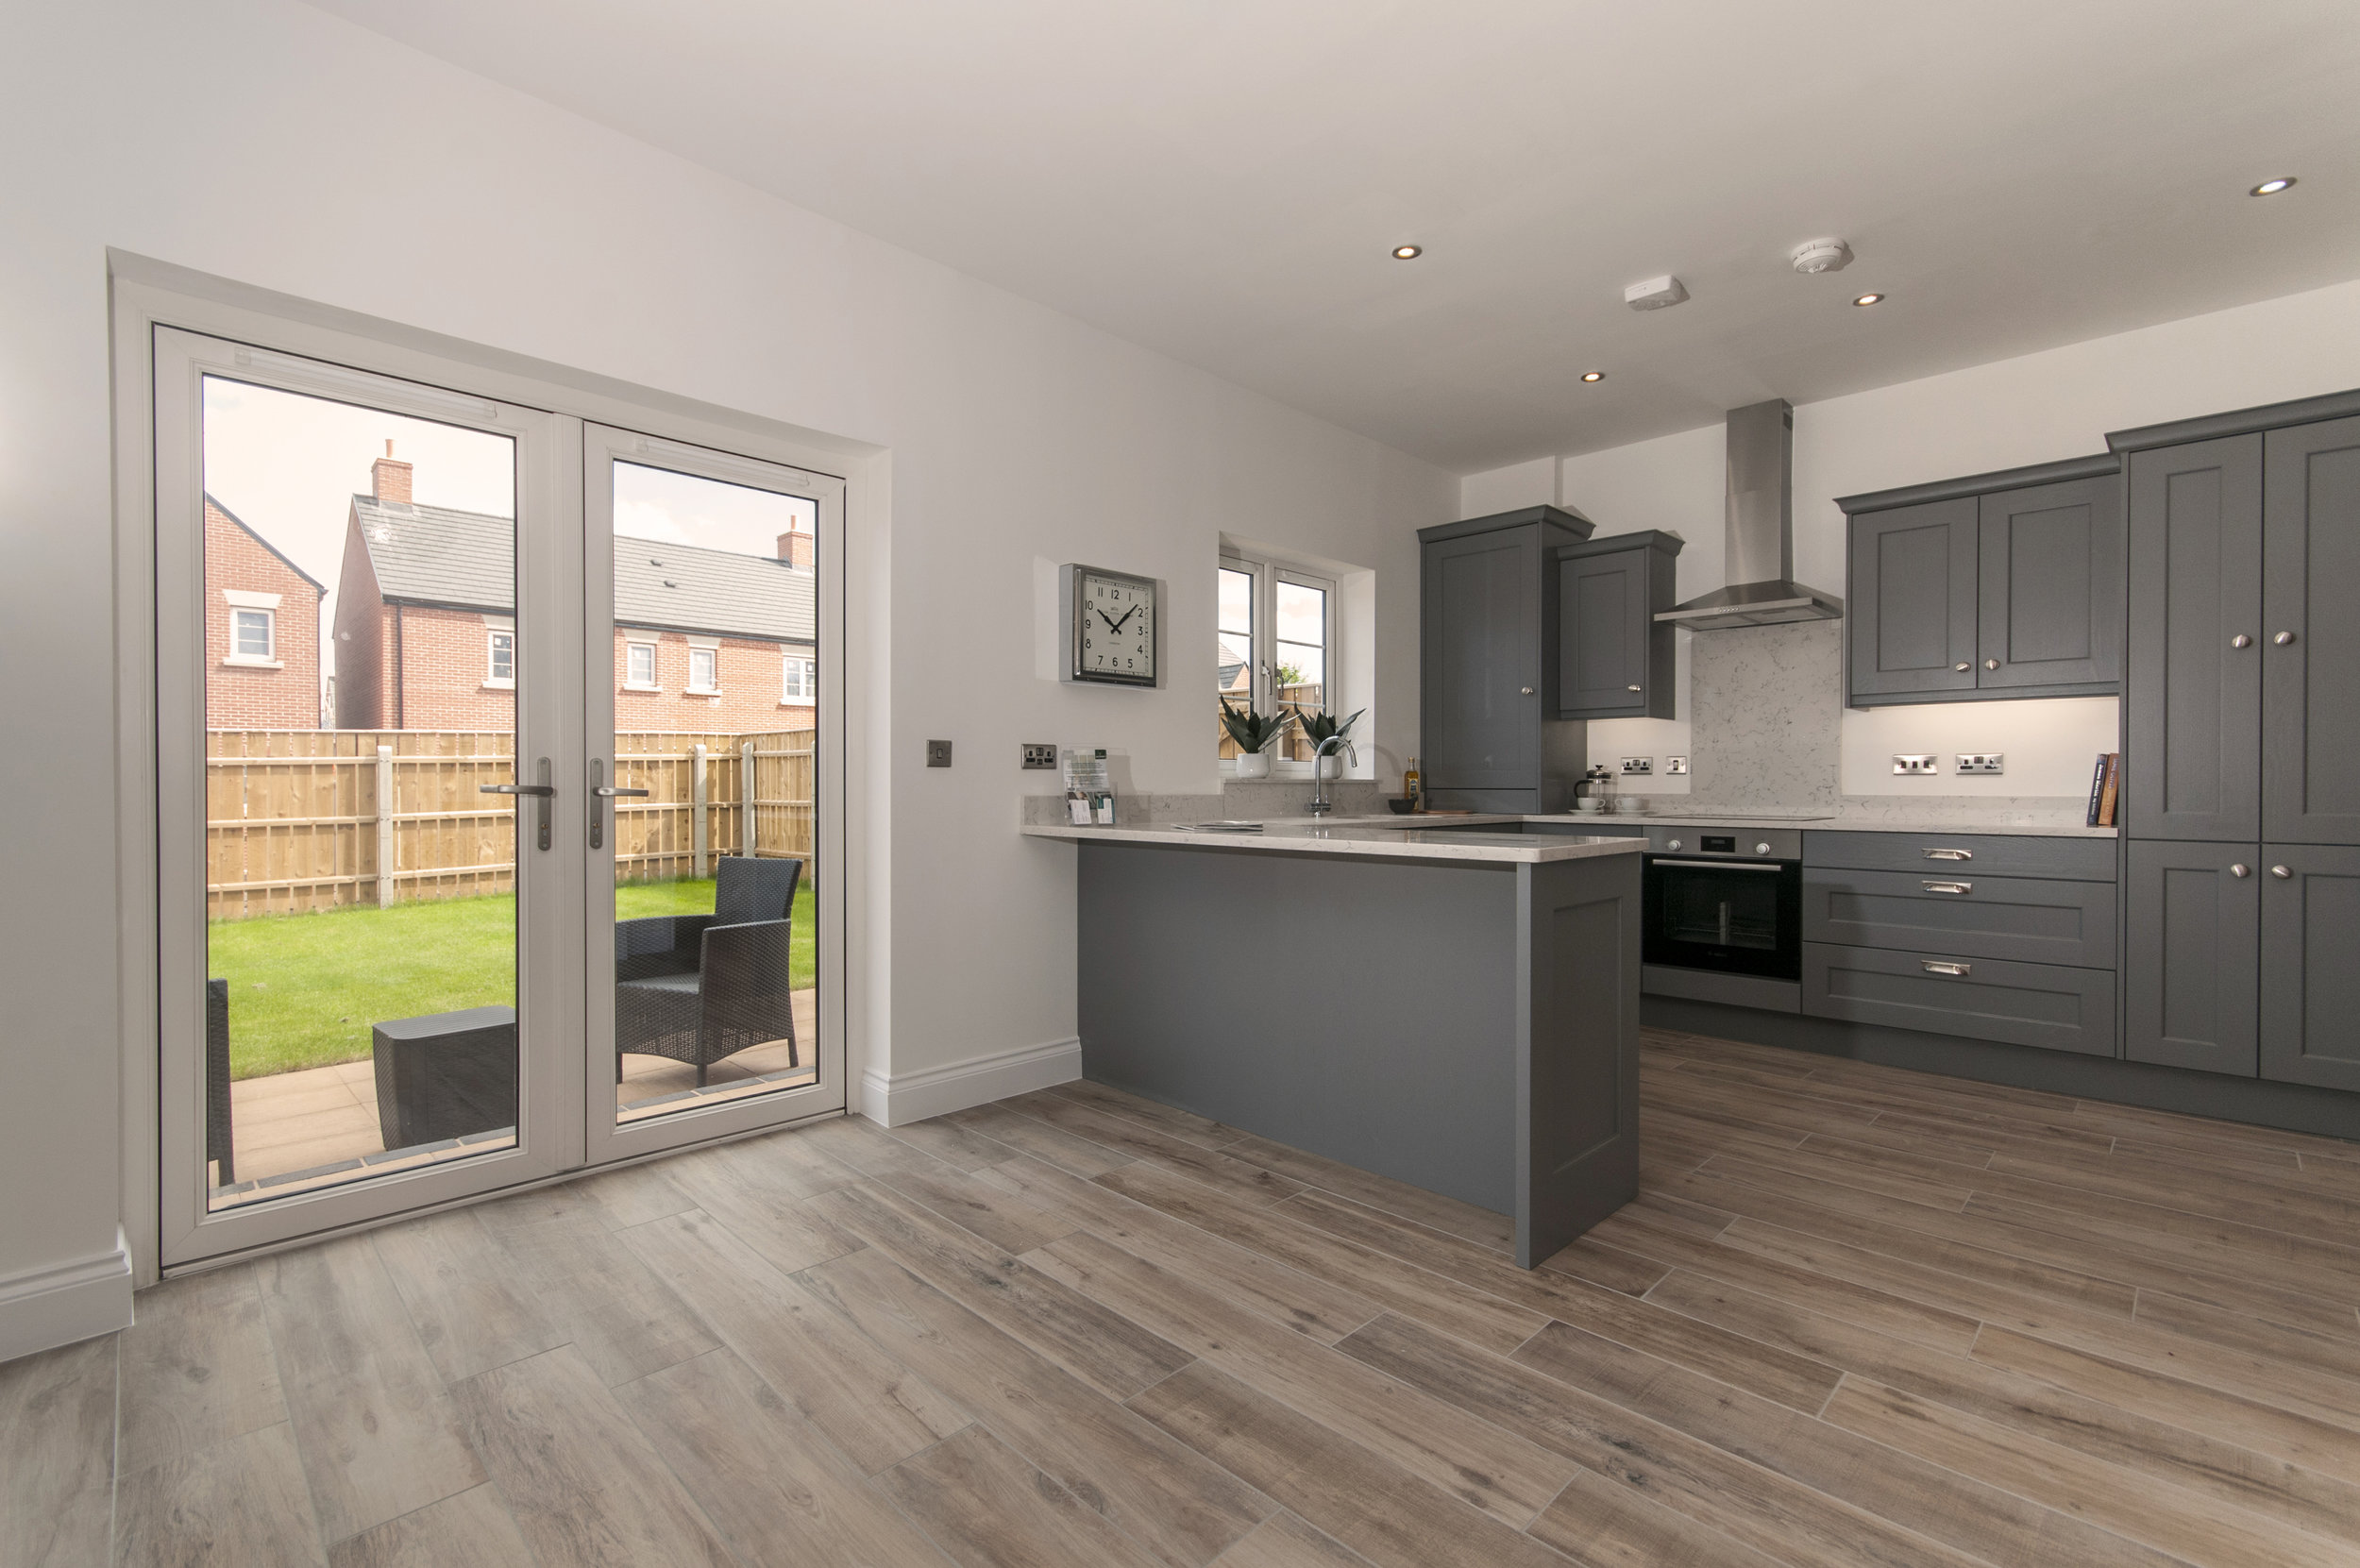 The kitchen in the Deer Park showhome has French doors which lead out to the garden. Each Deer Park home comes with freshly-laid turf as standard. Penguin PR: public relations, media and communications